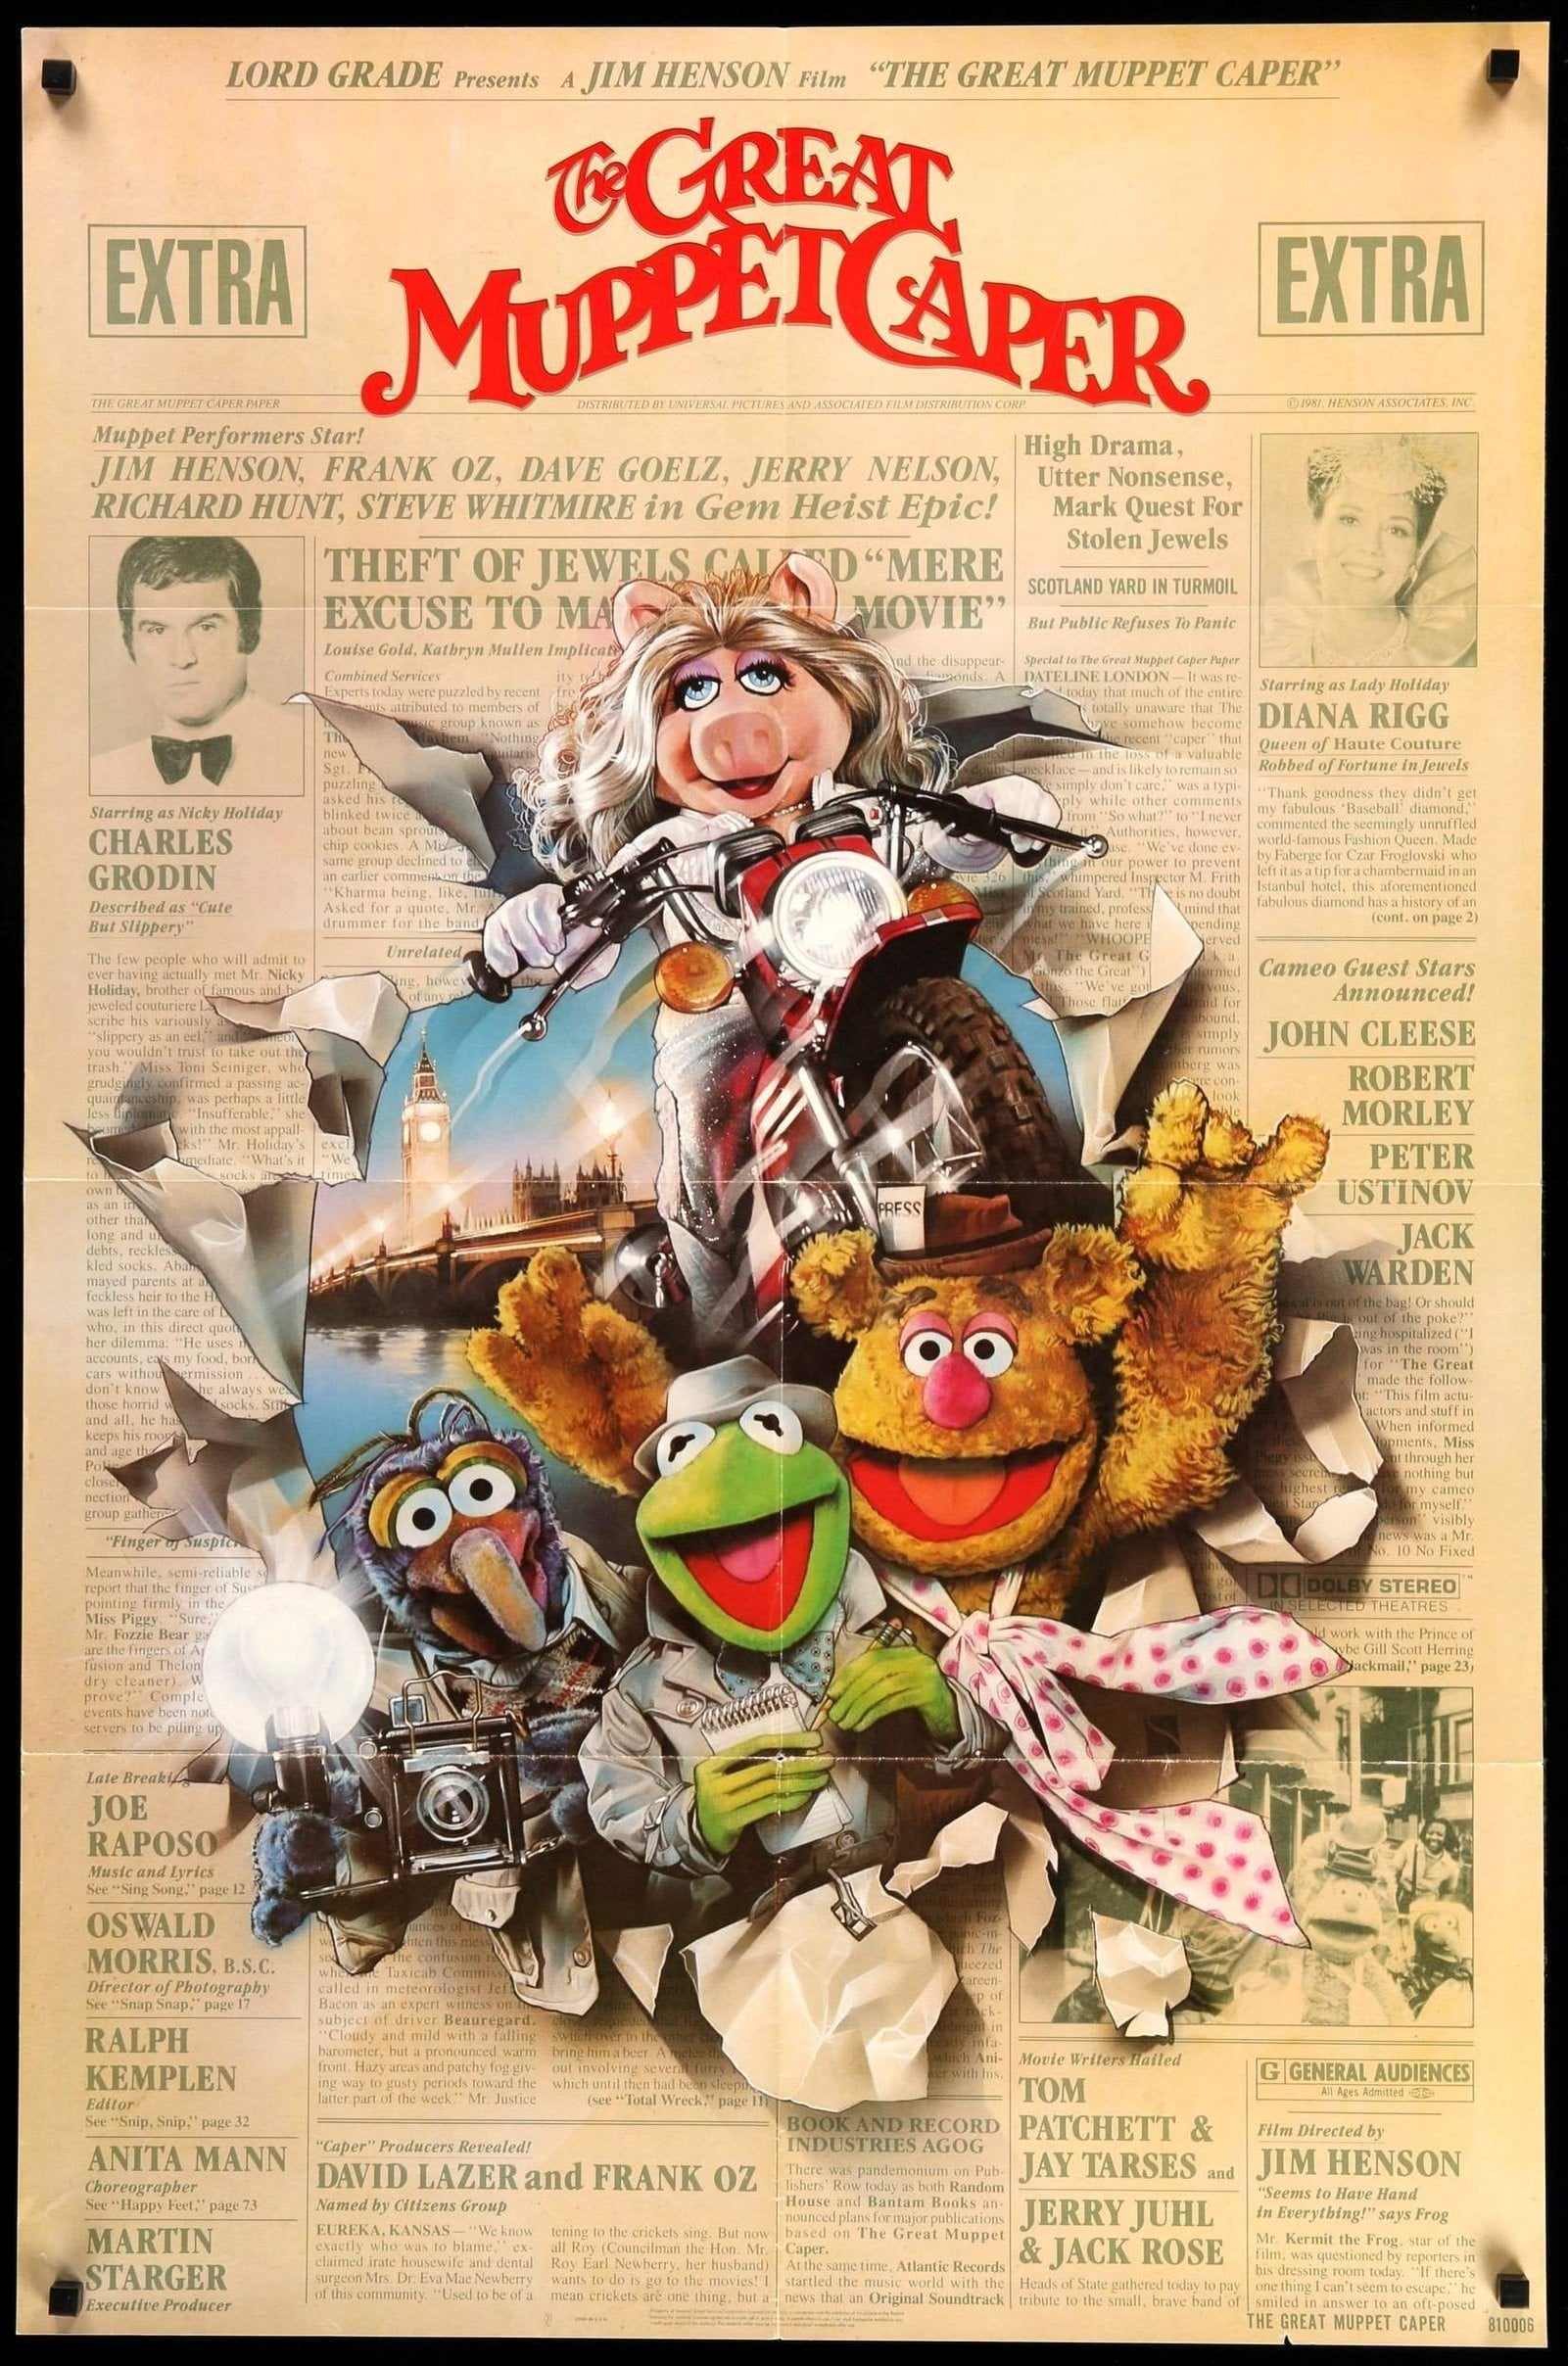 Image result for The Great muppet caper poster